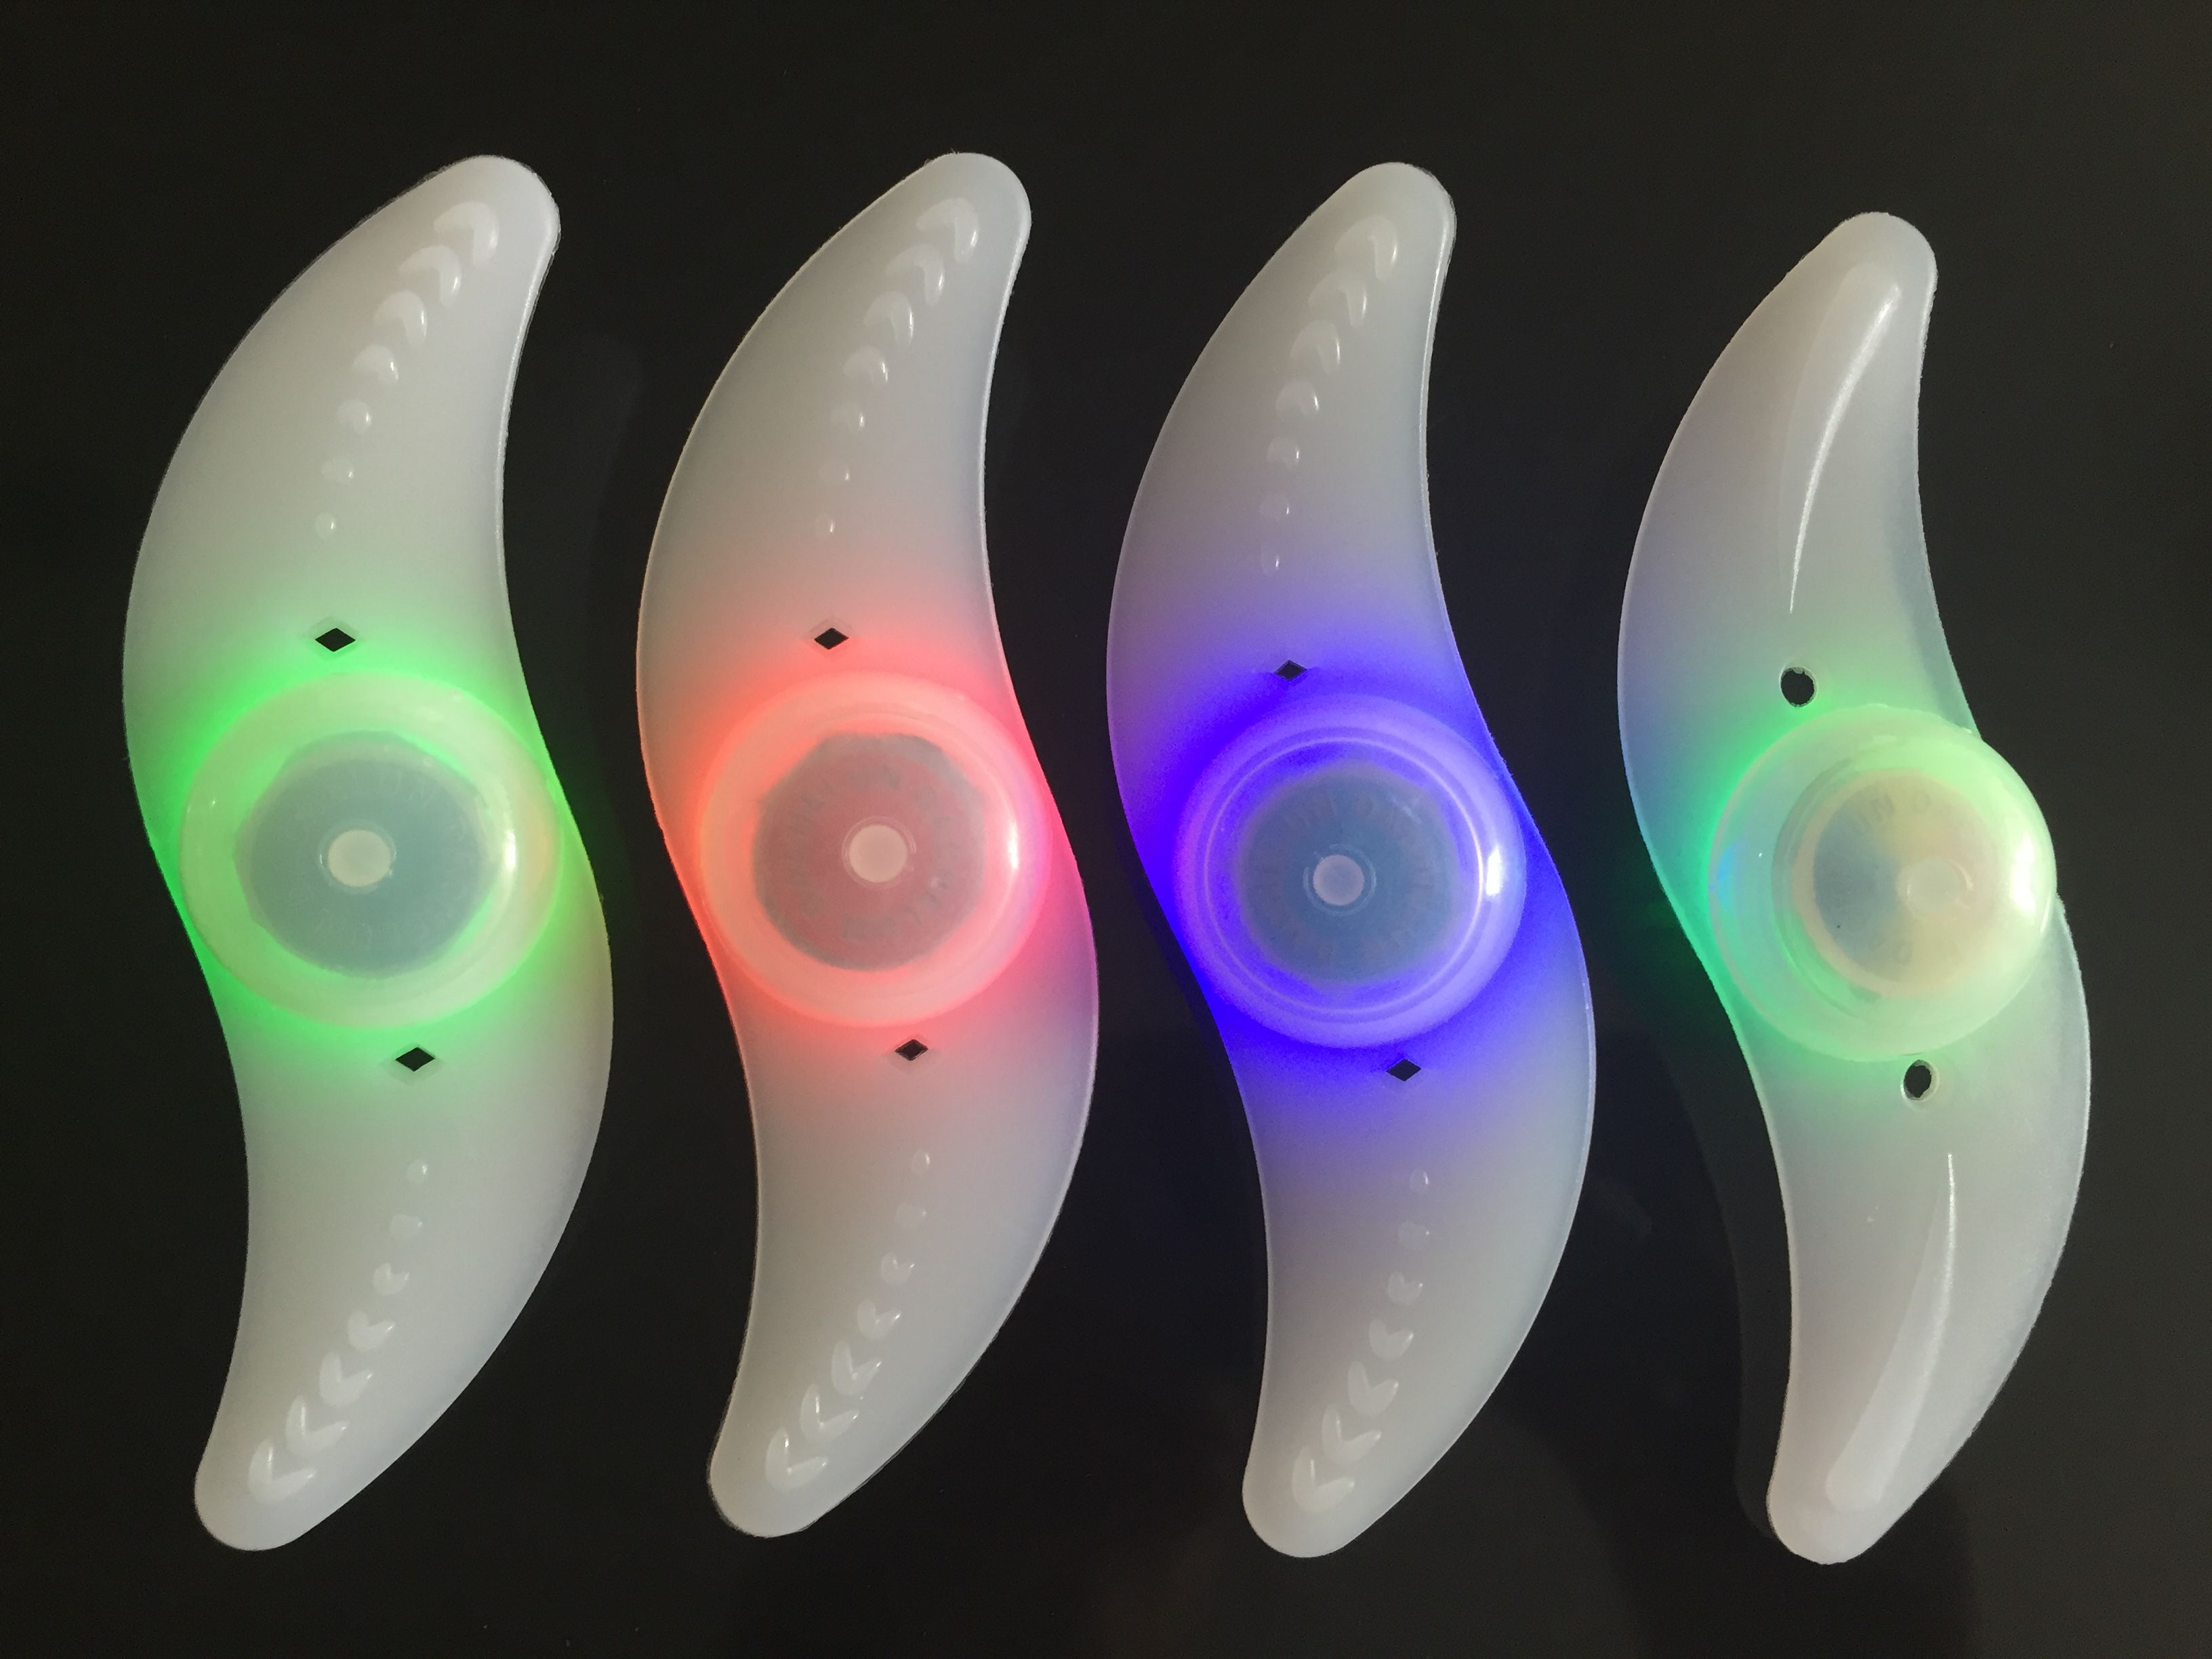 bike spoke lights #bike light #led light #lights #bike #bicycle